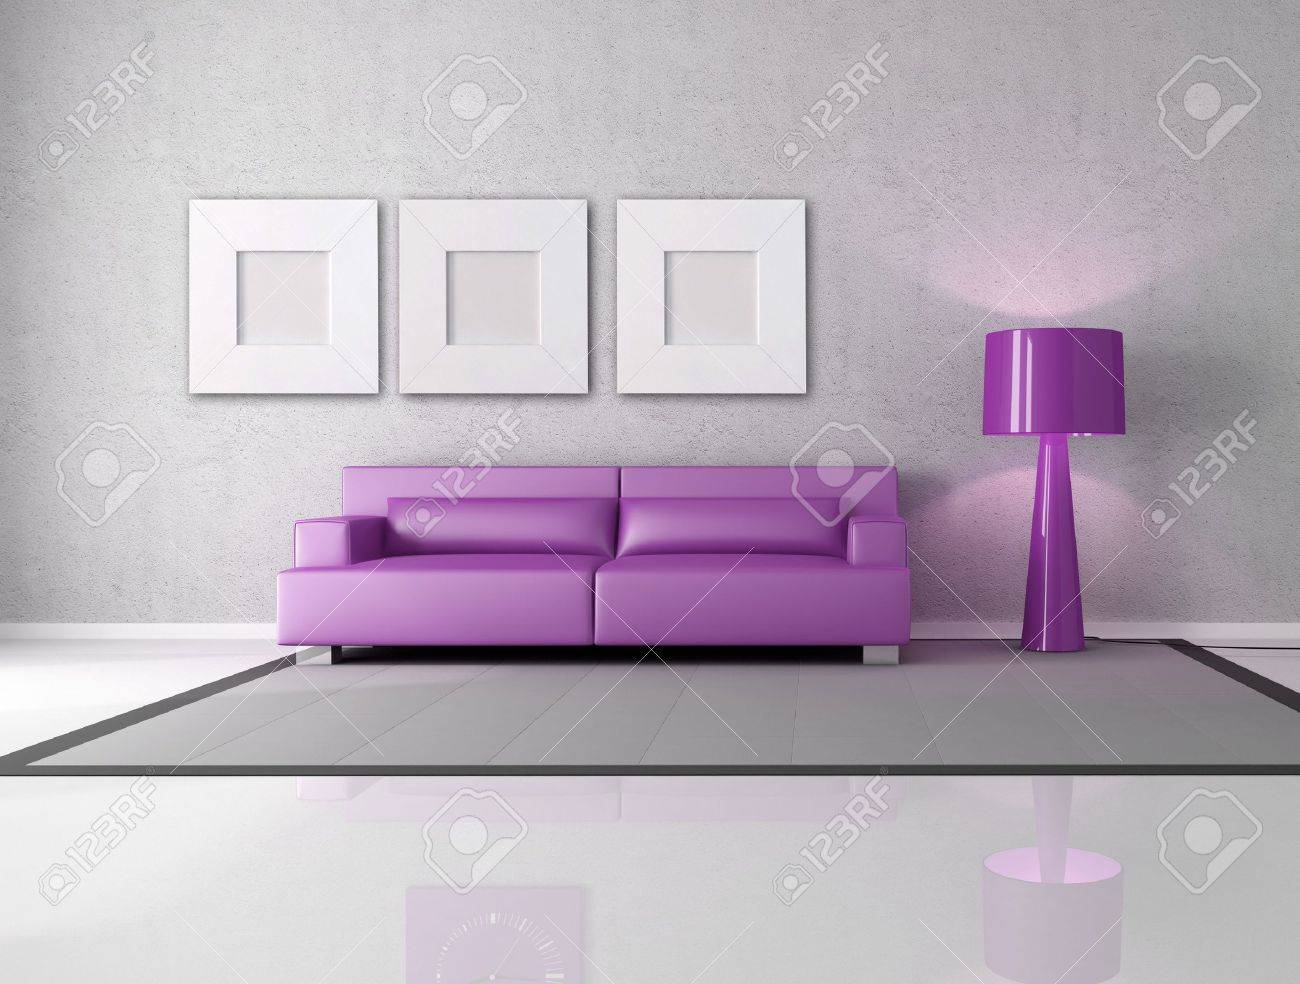 Minimalist Gray And Purple Living Room With Fashion Lamp Stock Photo